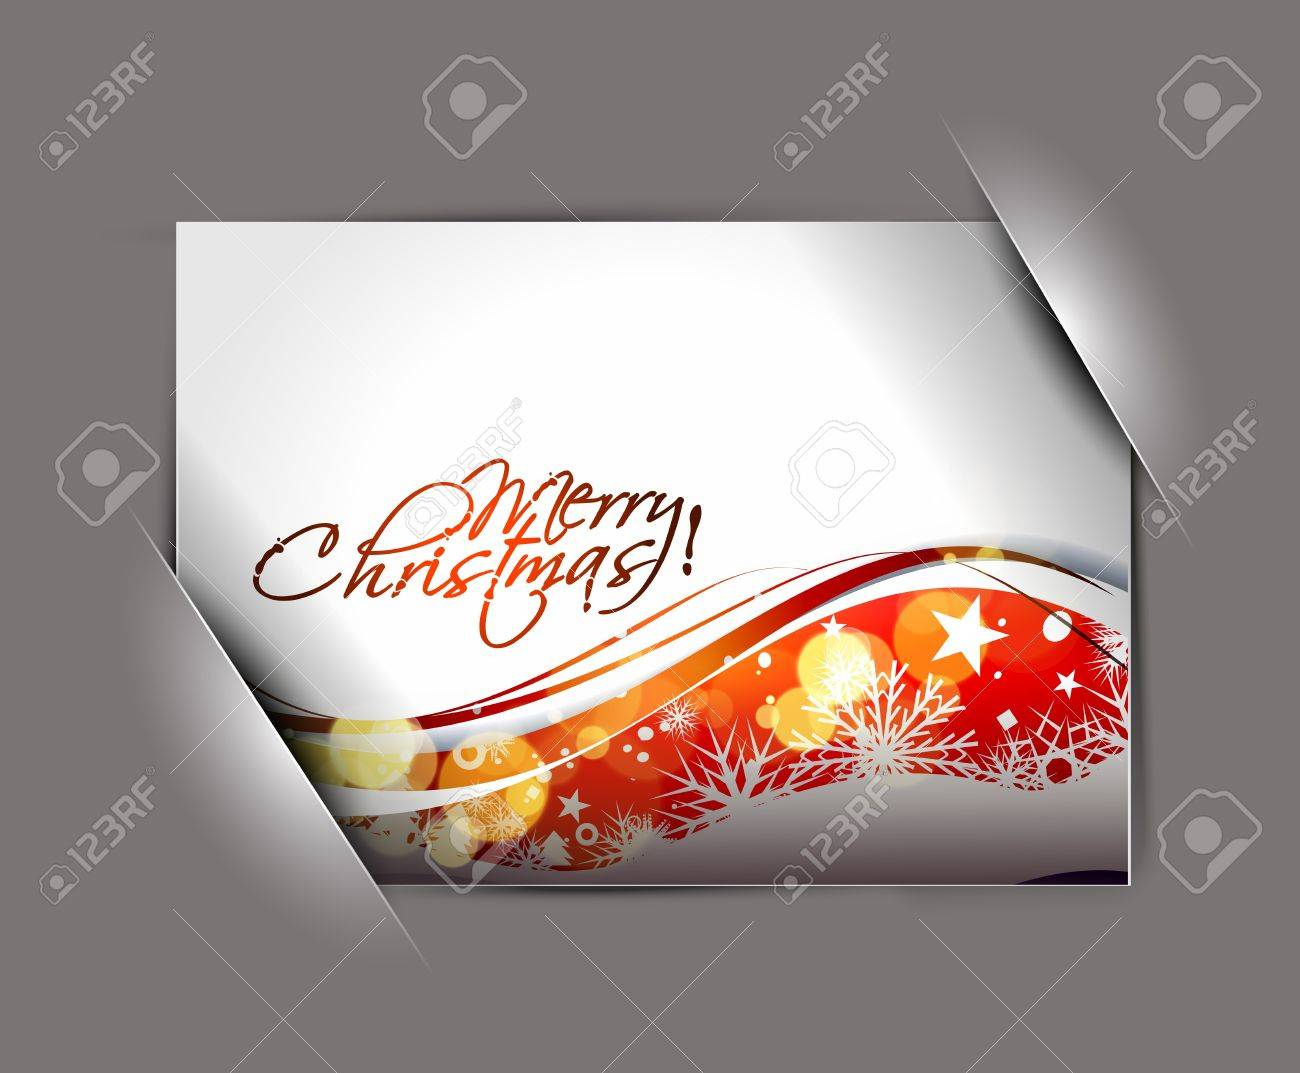 greetings card for holiday with corner curl design, vector illustration Stock Vector - 11579992